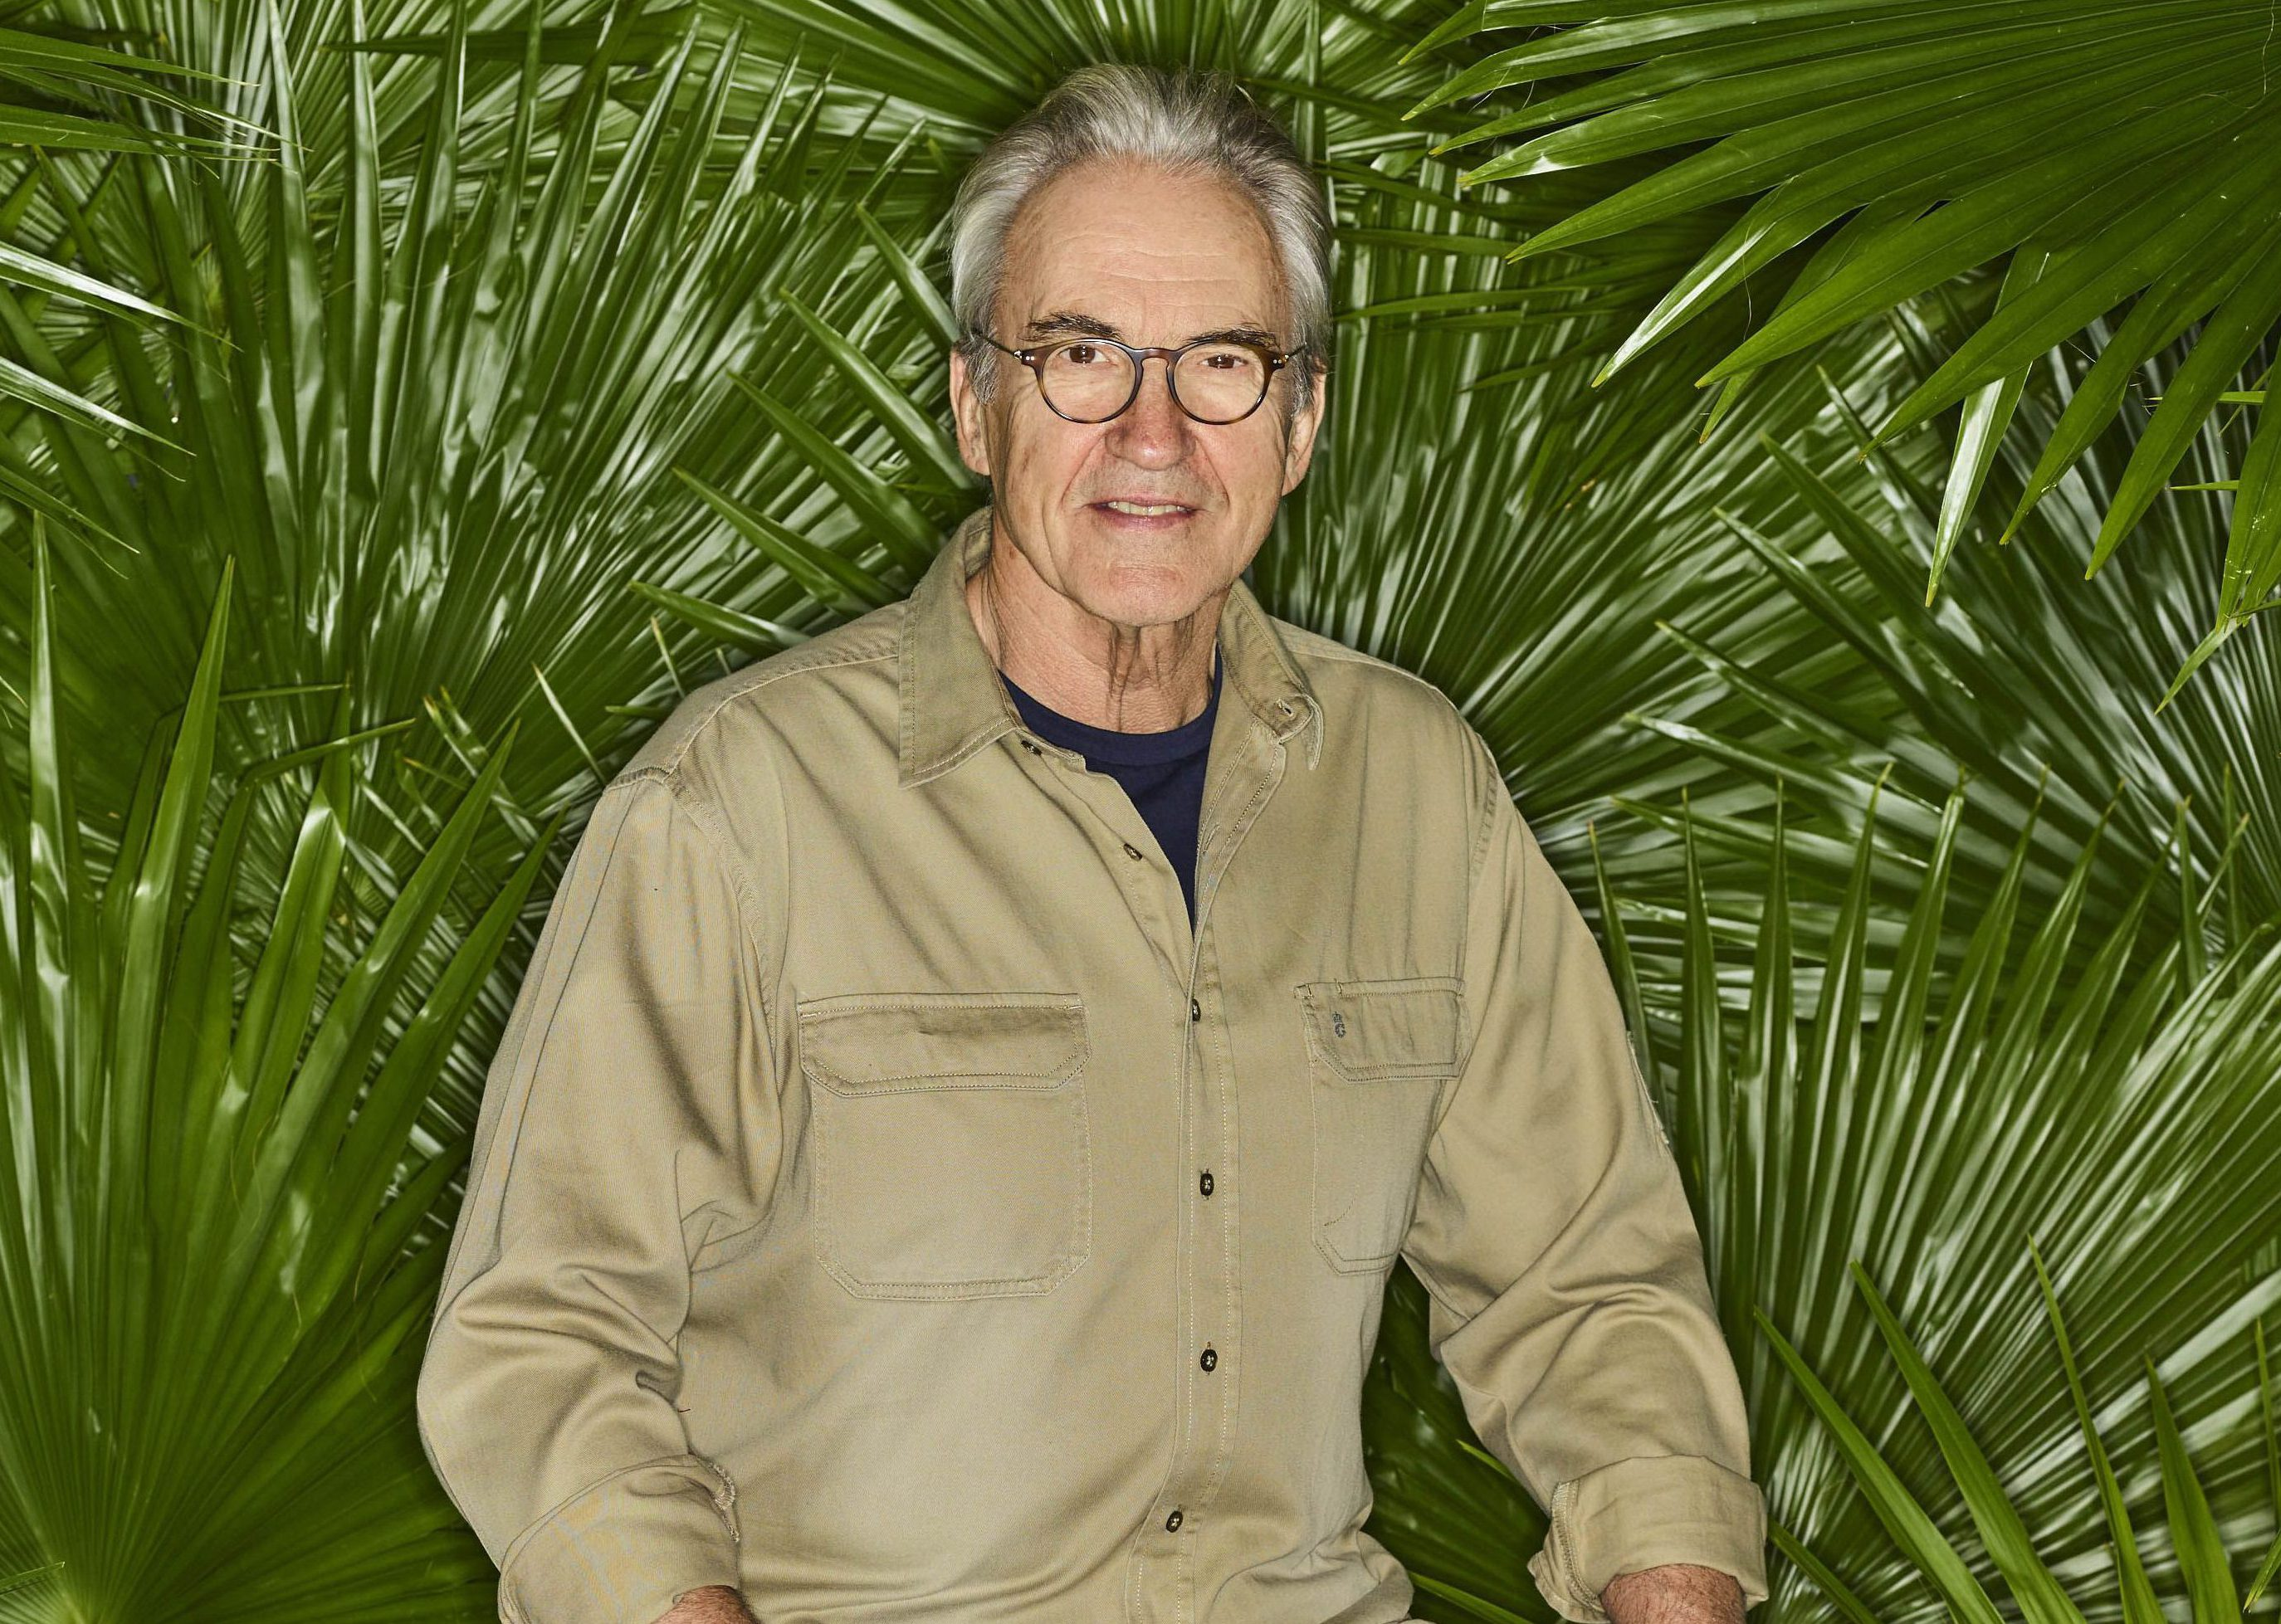 Larry Lamb's 'good blokery' on I'm A Celebrity has made him the favourite to become King of the Jungle